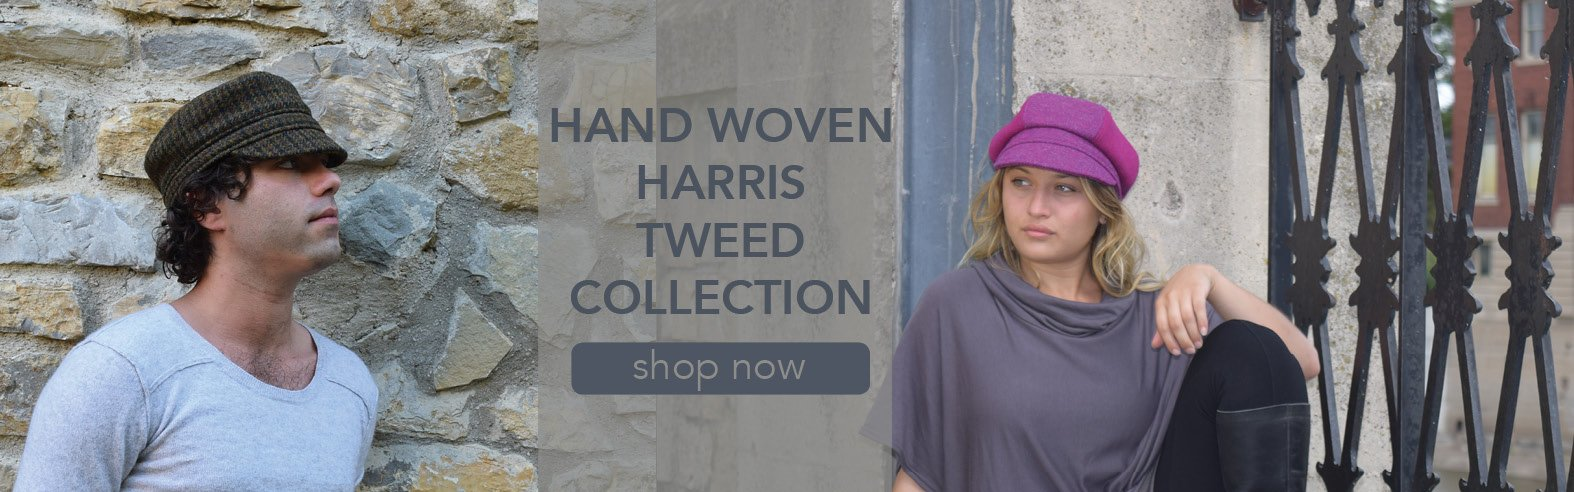 Puffin Gear Tilburg Wool Hats Made in Canada